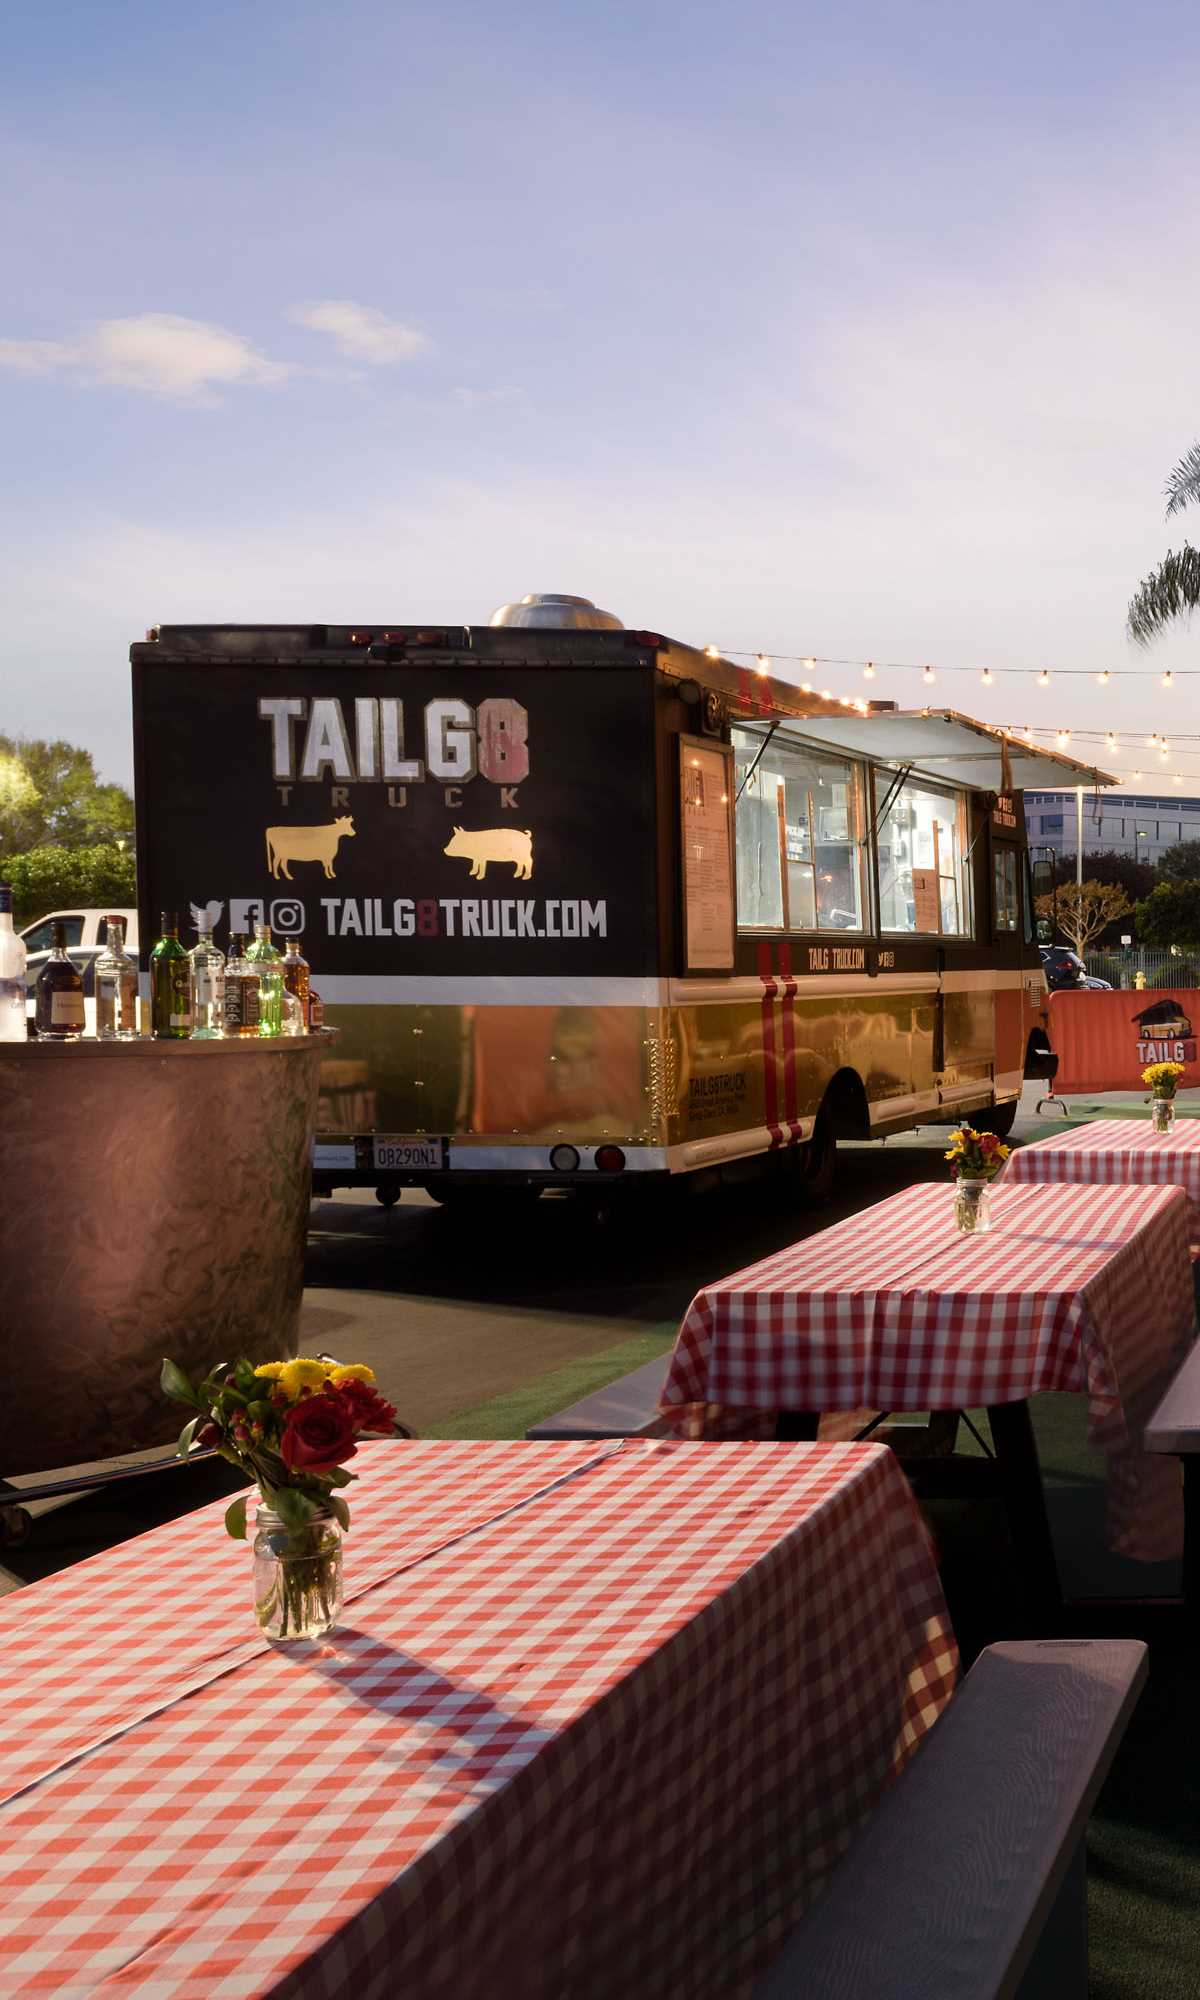 View of Tailg8truck setup outside the Hilton Santa Clara Hotel.